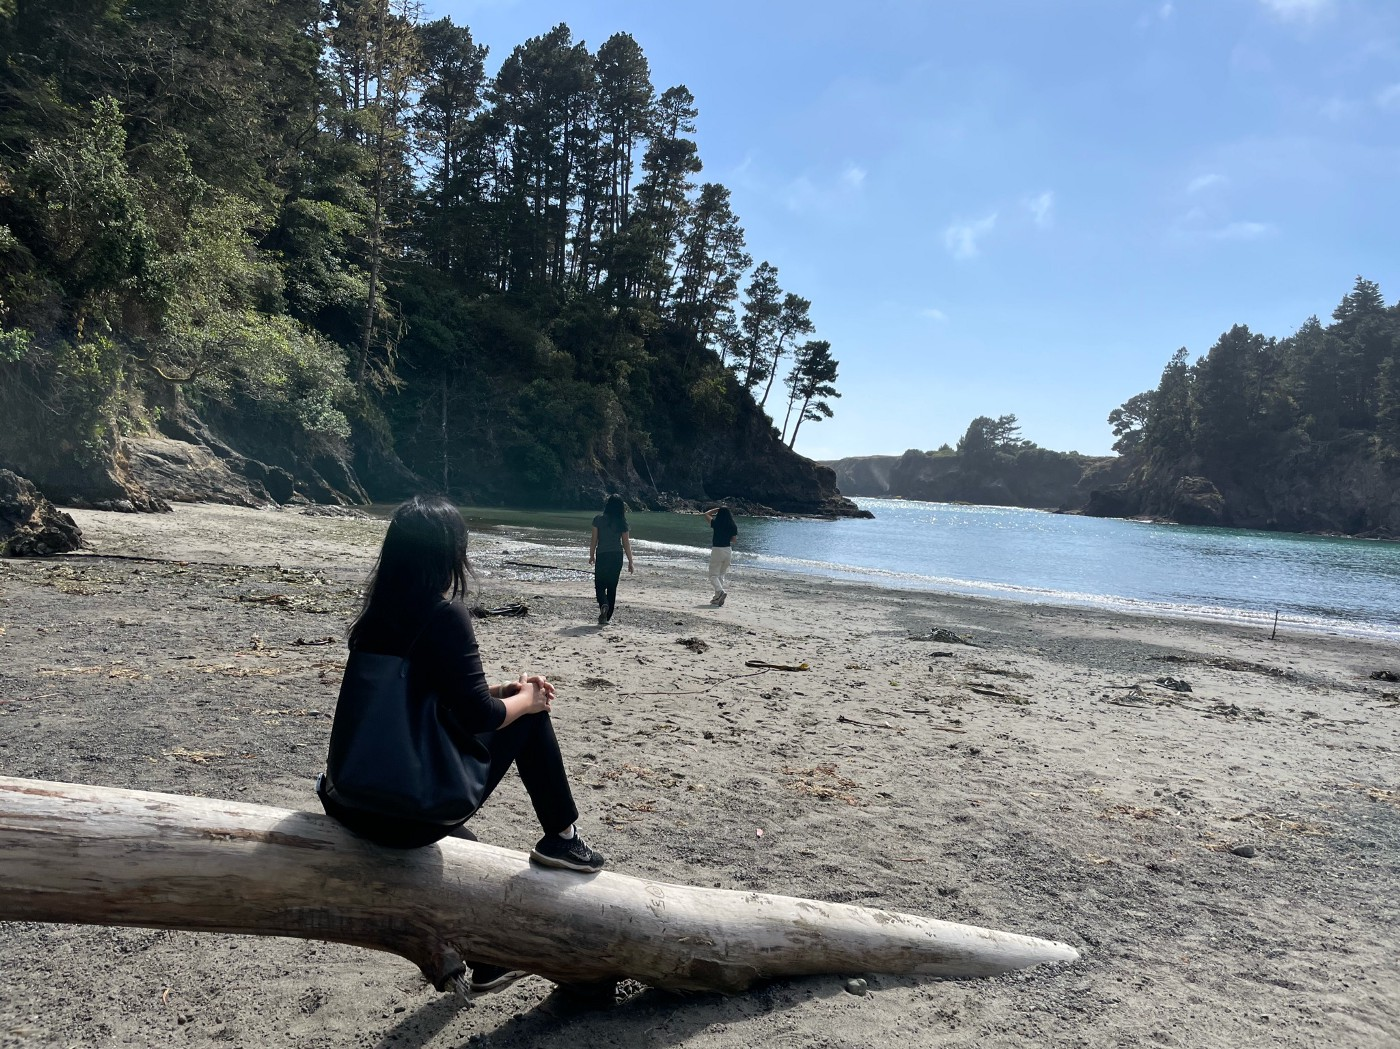 Woman sits on log with her back to the camera as two teen girls walk toward the water's edge.